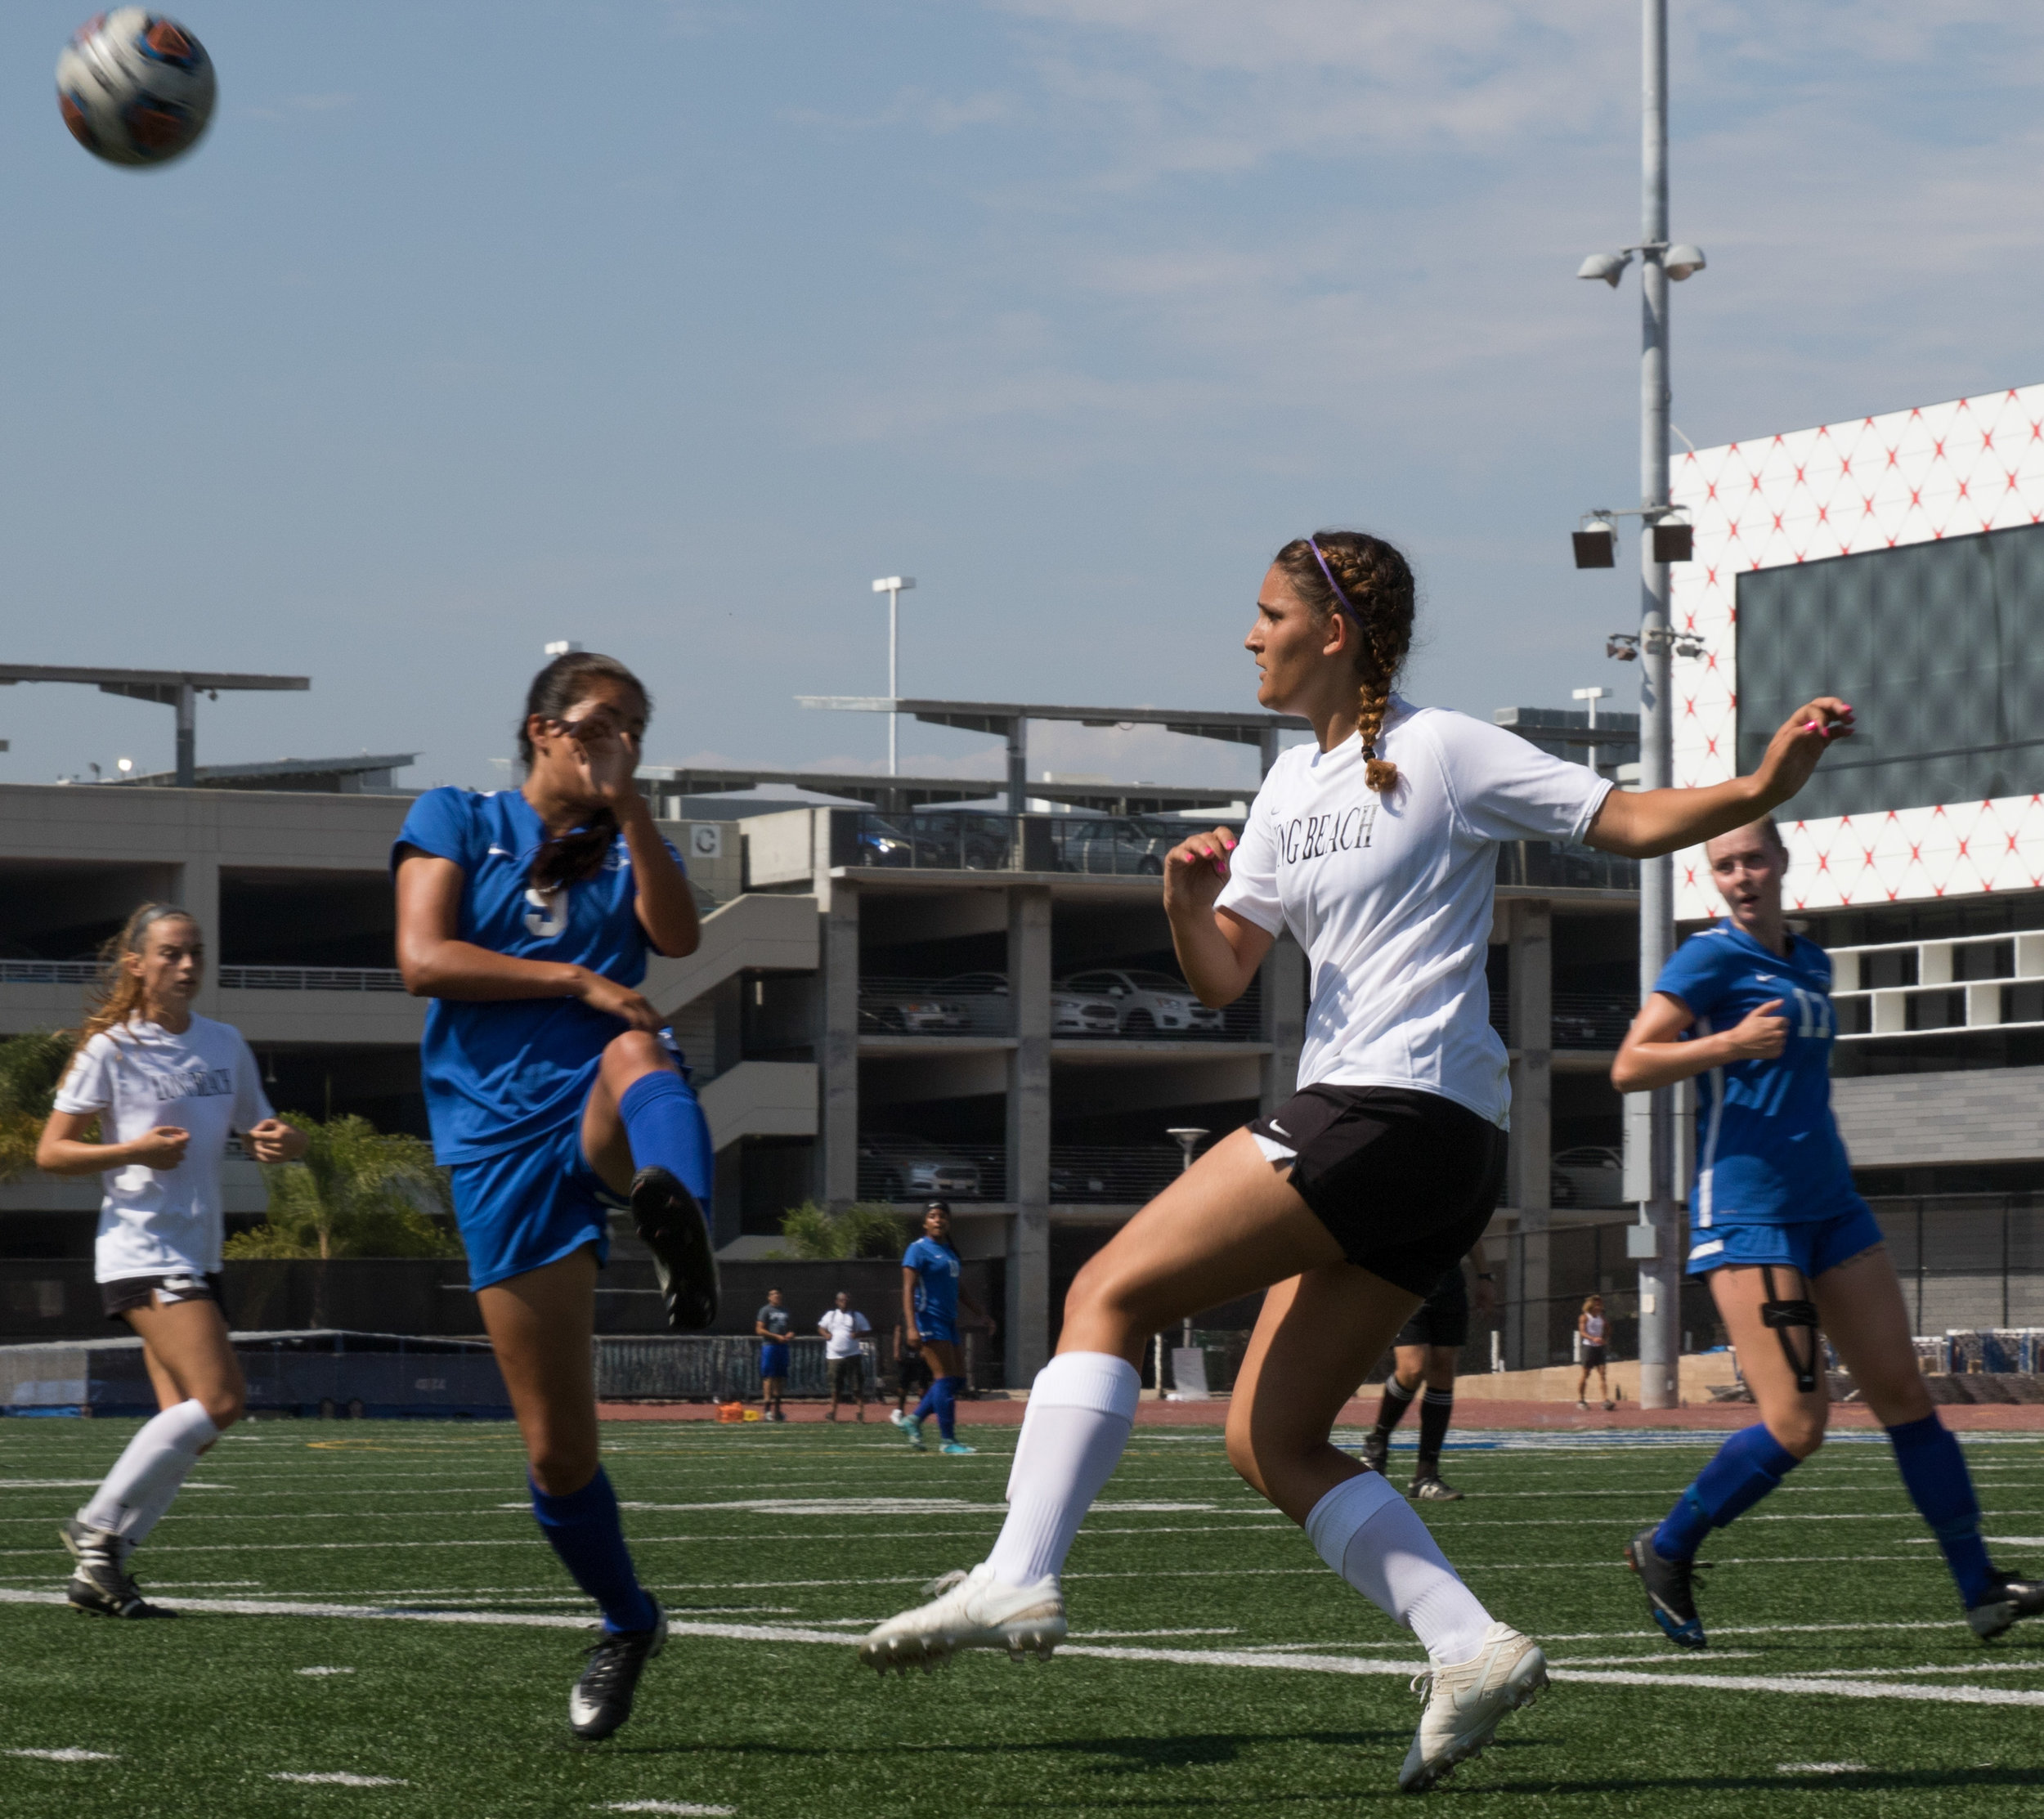 Santa Monica College Corsairs freshman midfielder Ashley Martinez (9, middle) battles for the ball with Long Beach City College Vikings Sophomore Defender Maria Vitiello (right) in their 1-1 draw on August 29, 2017 at the Santa Monica College Football field on the Santa Monica College main campus in Santa Monica California (Photo By: Zane Meyer-Thornton)